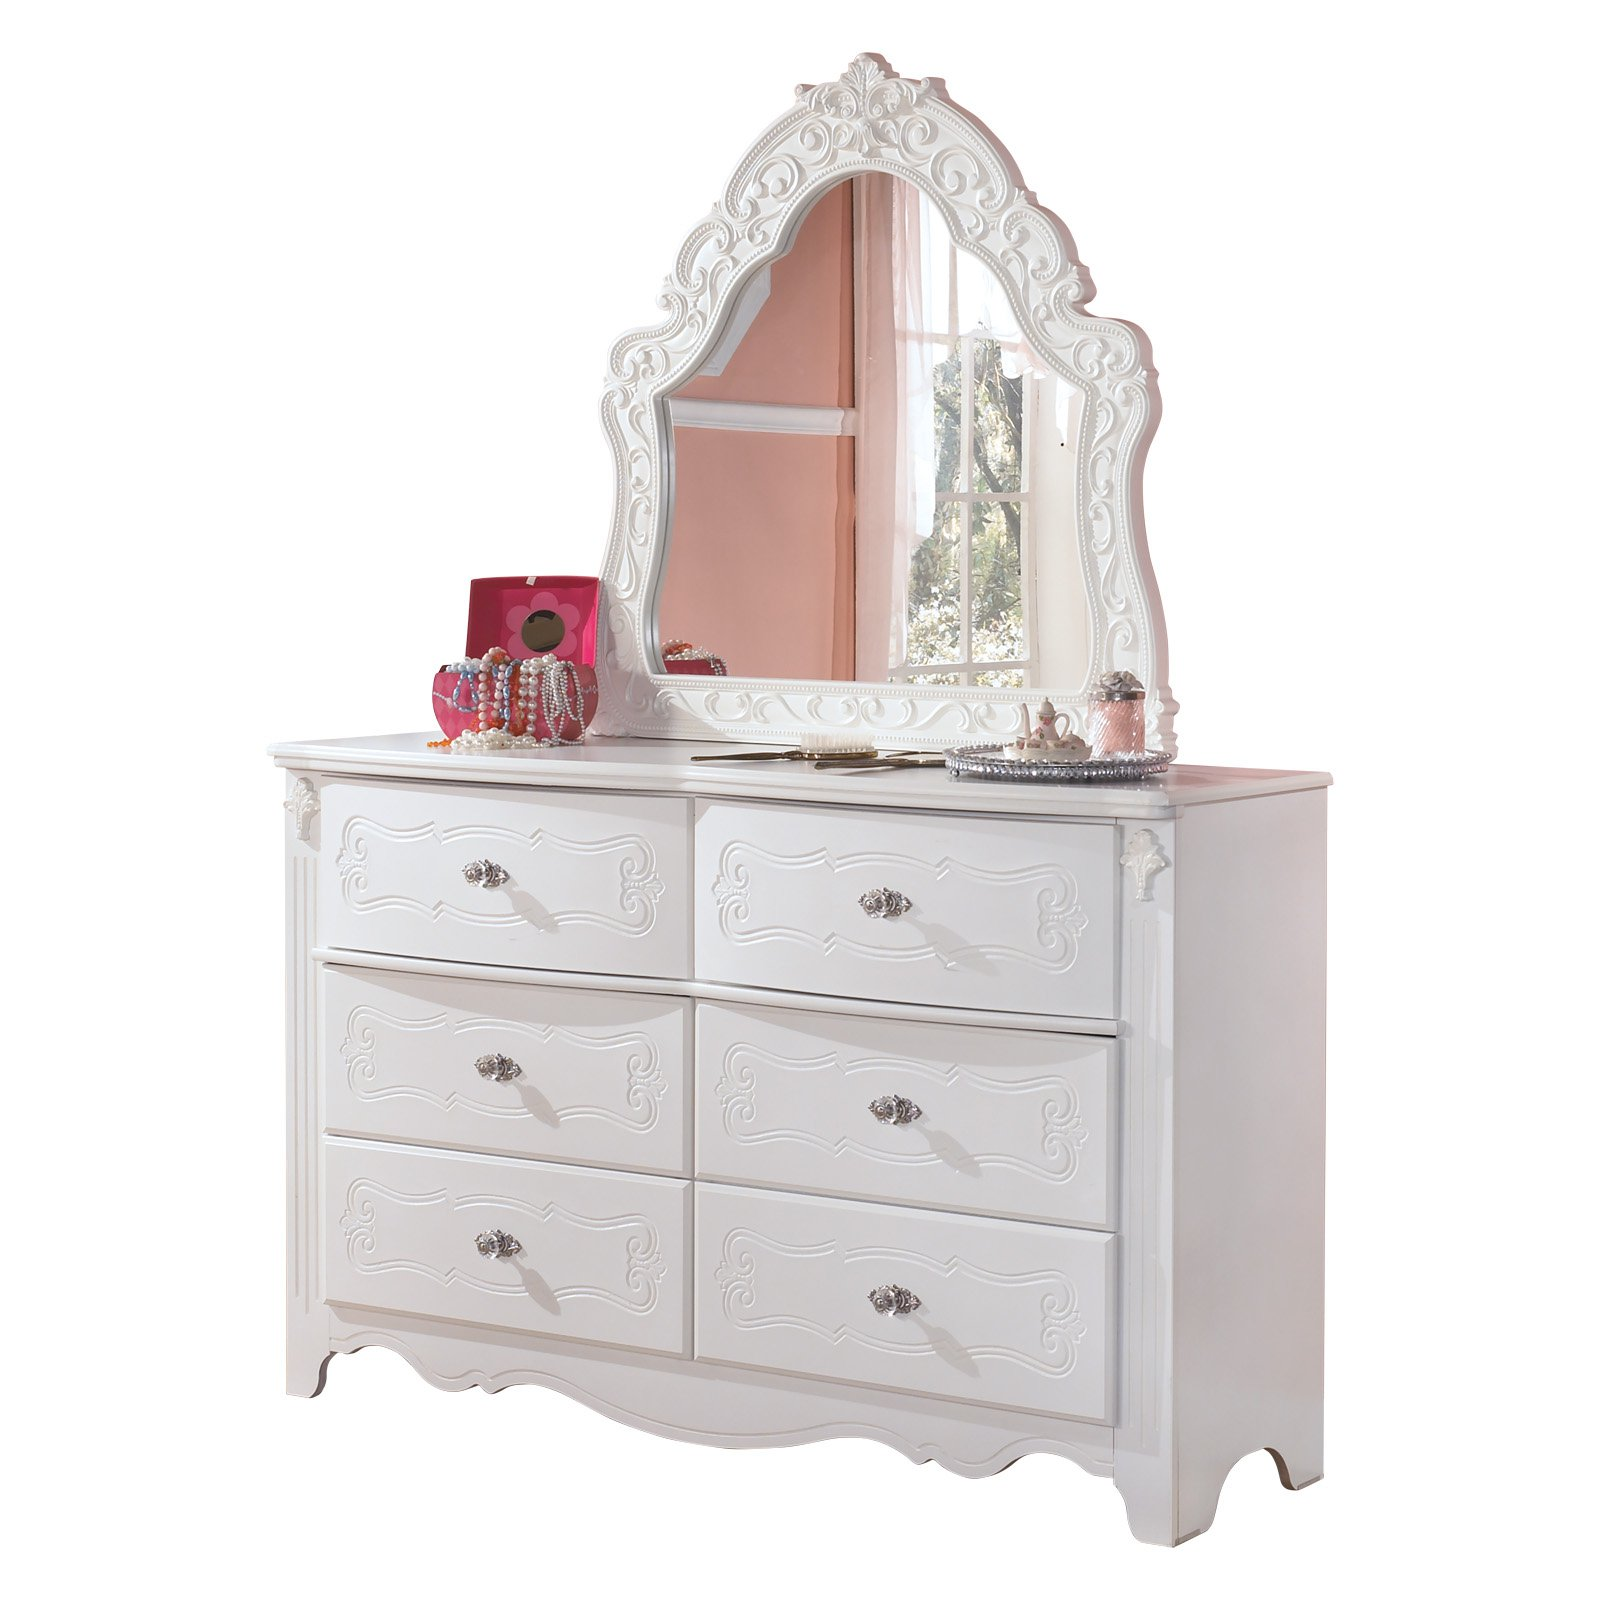 Signature Design by Ashley Exquisite 6 Drawer Dresser with Mirror